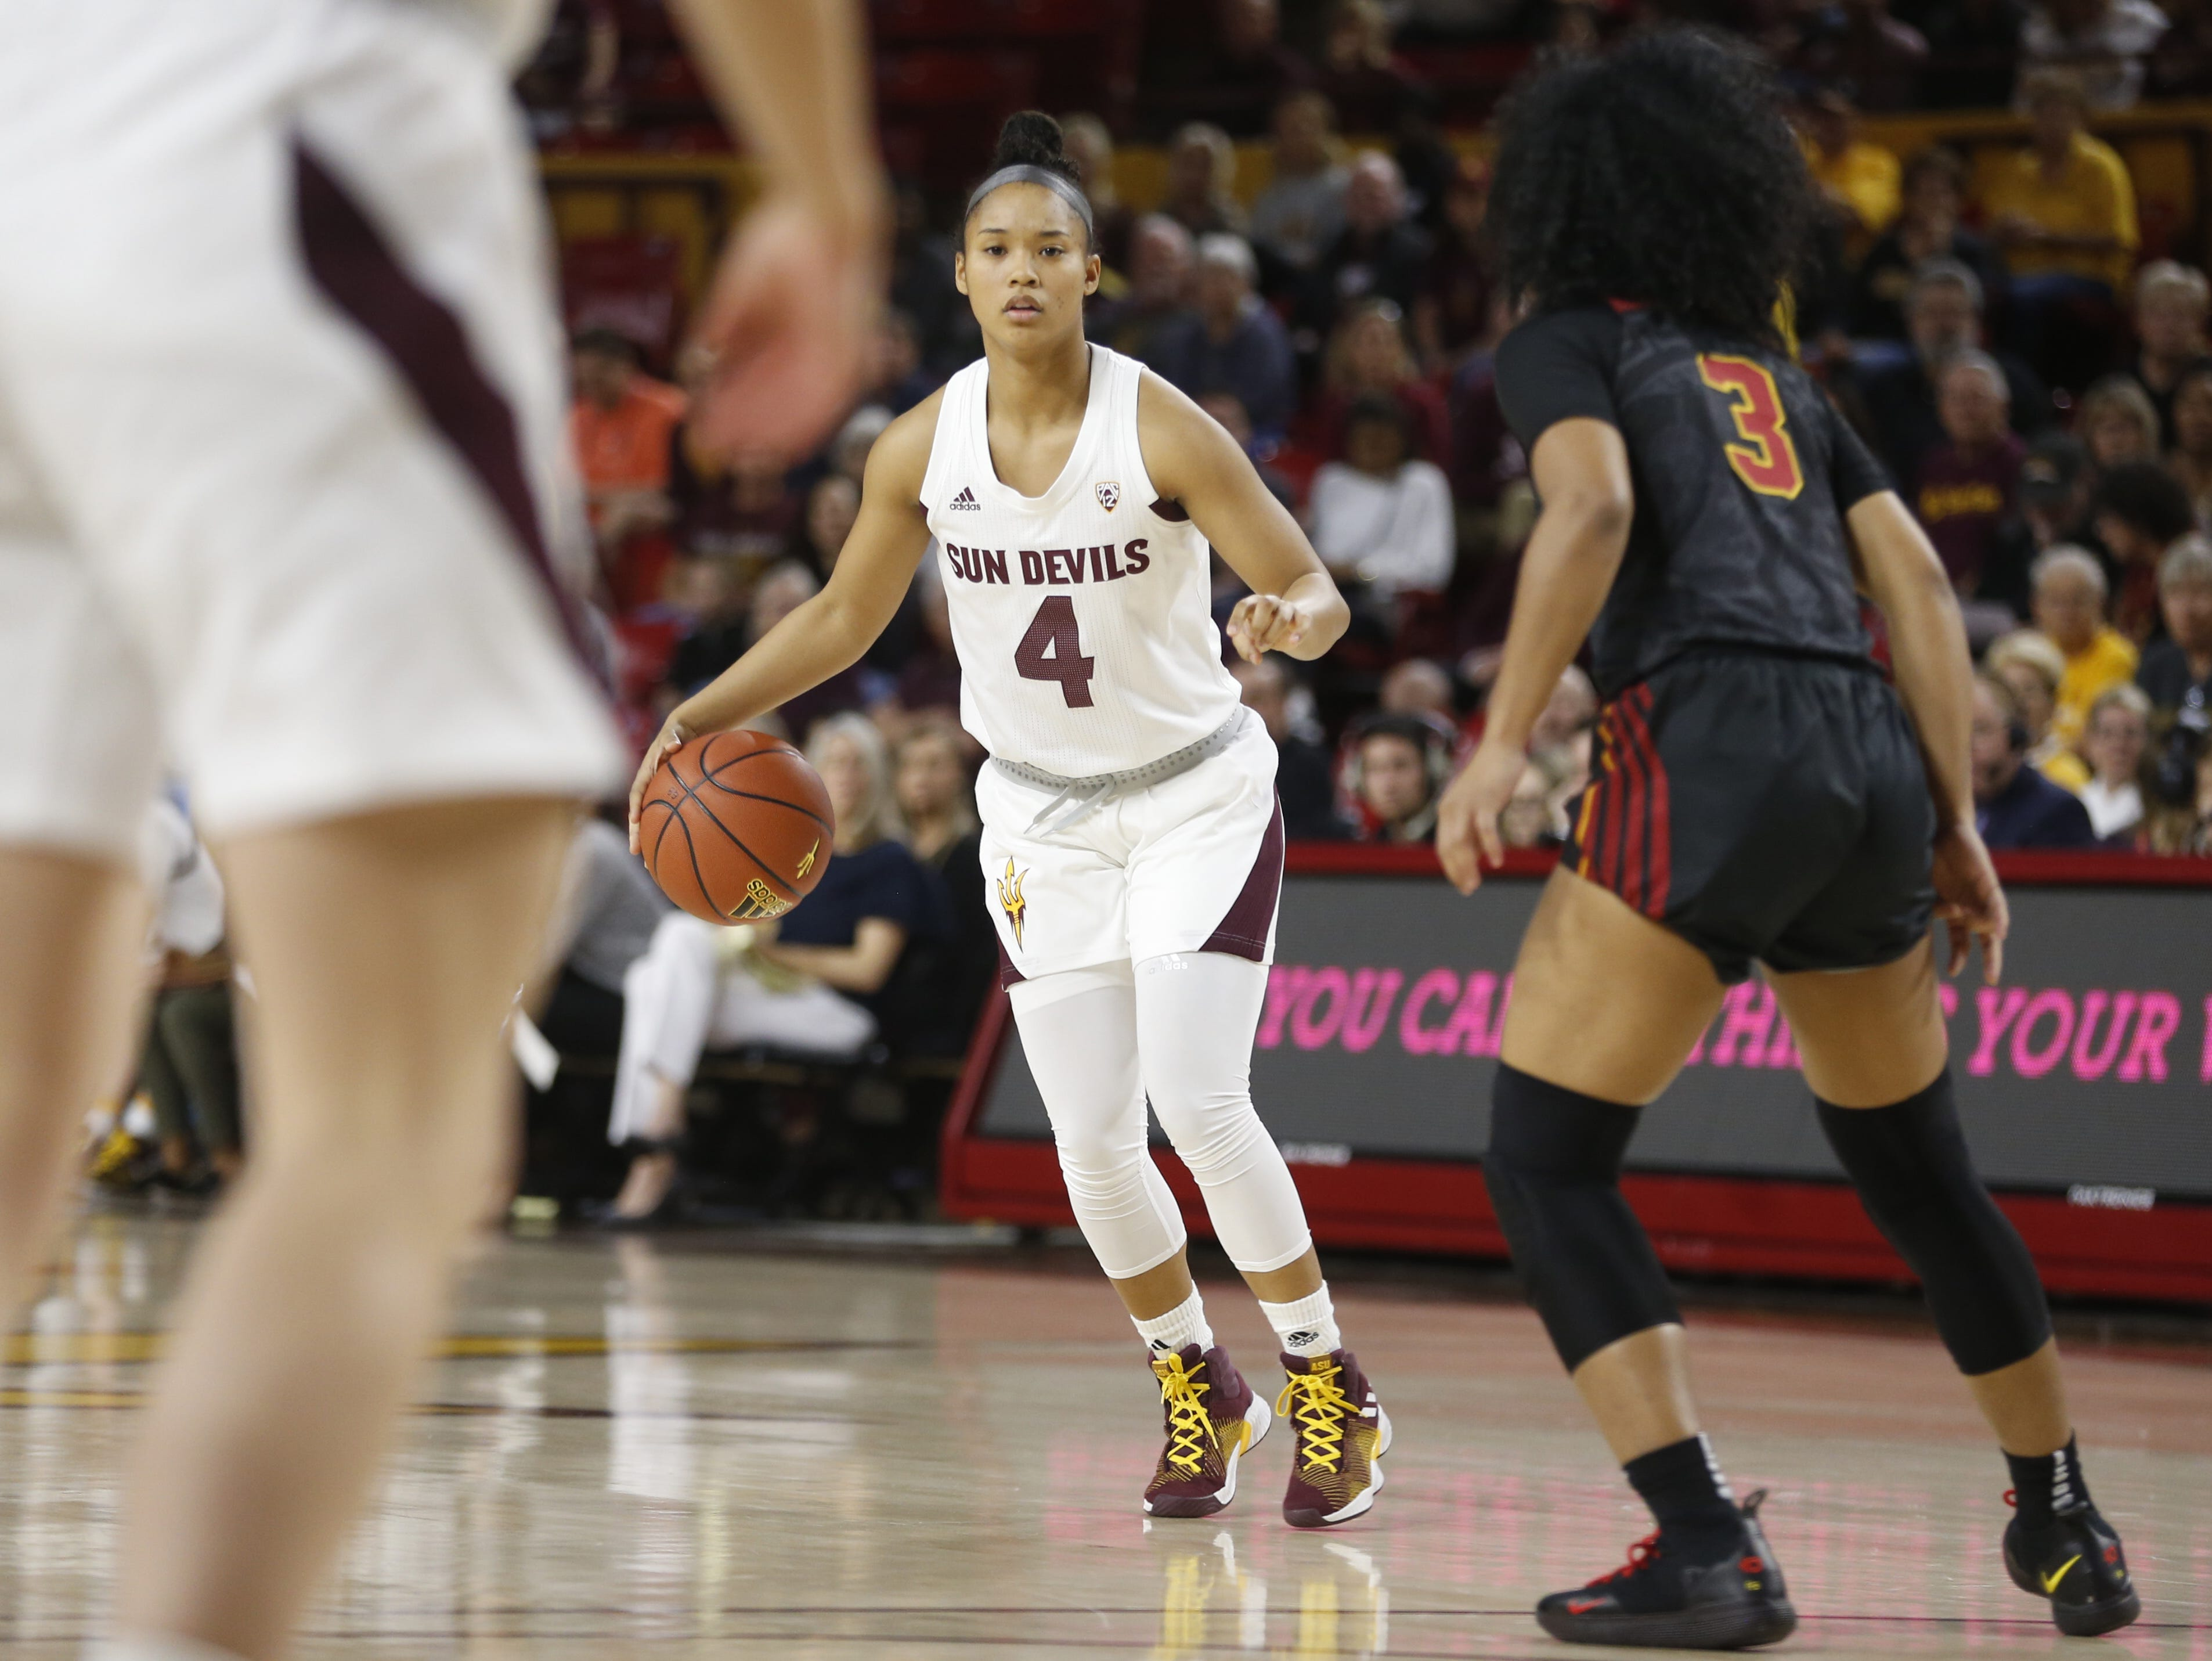 ASU's Kiara Russell (4) dribbles against USC's Minyon Moore (3) during the first half at Wells Fargo Arena in Tempe, Ariz. on January 27, 2019.